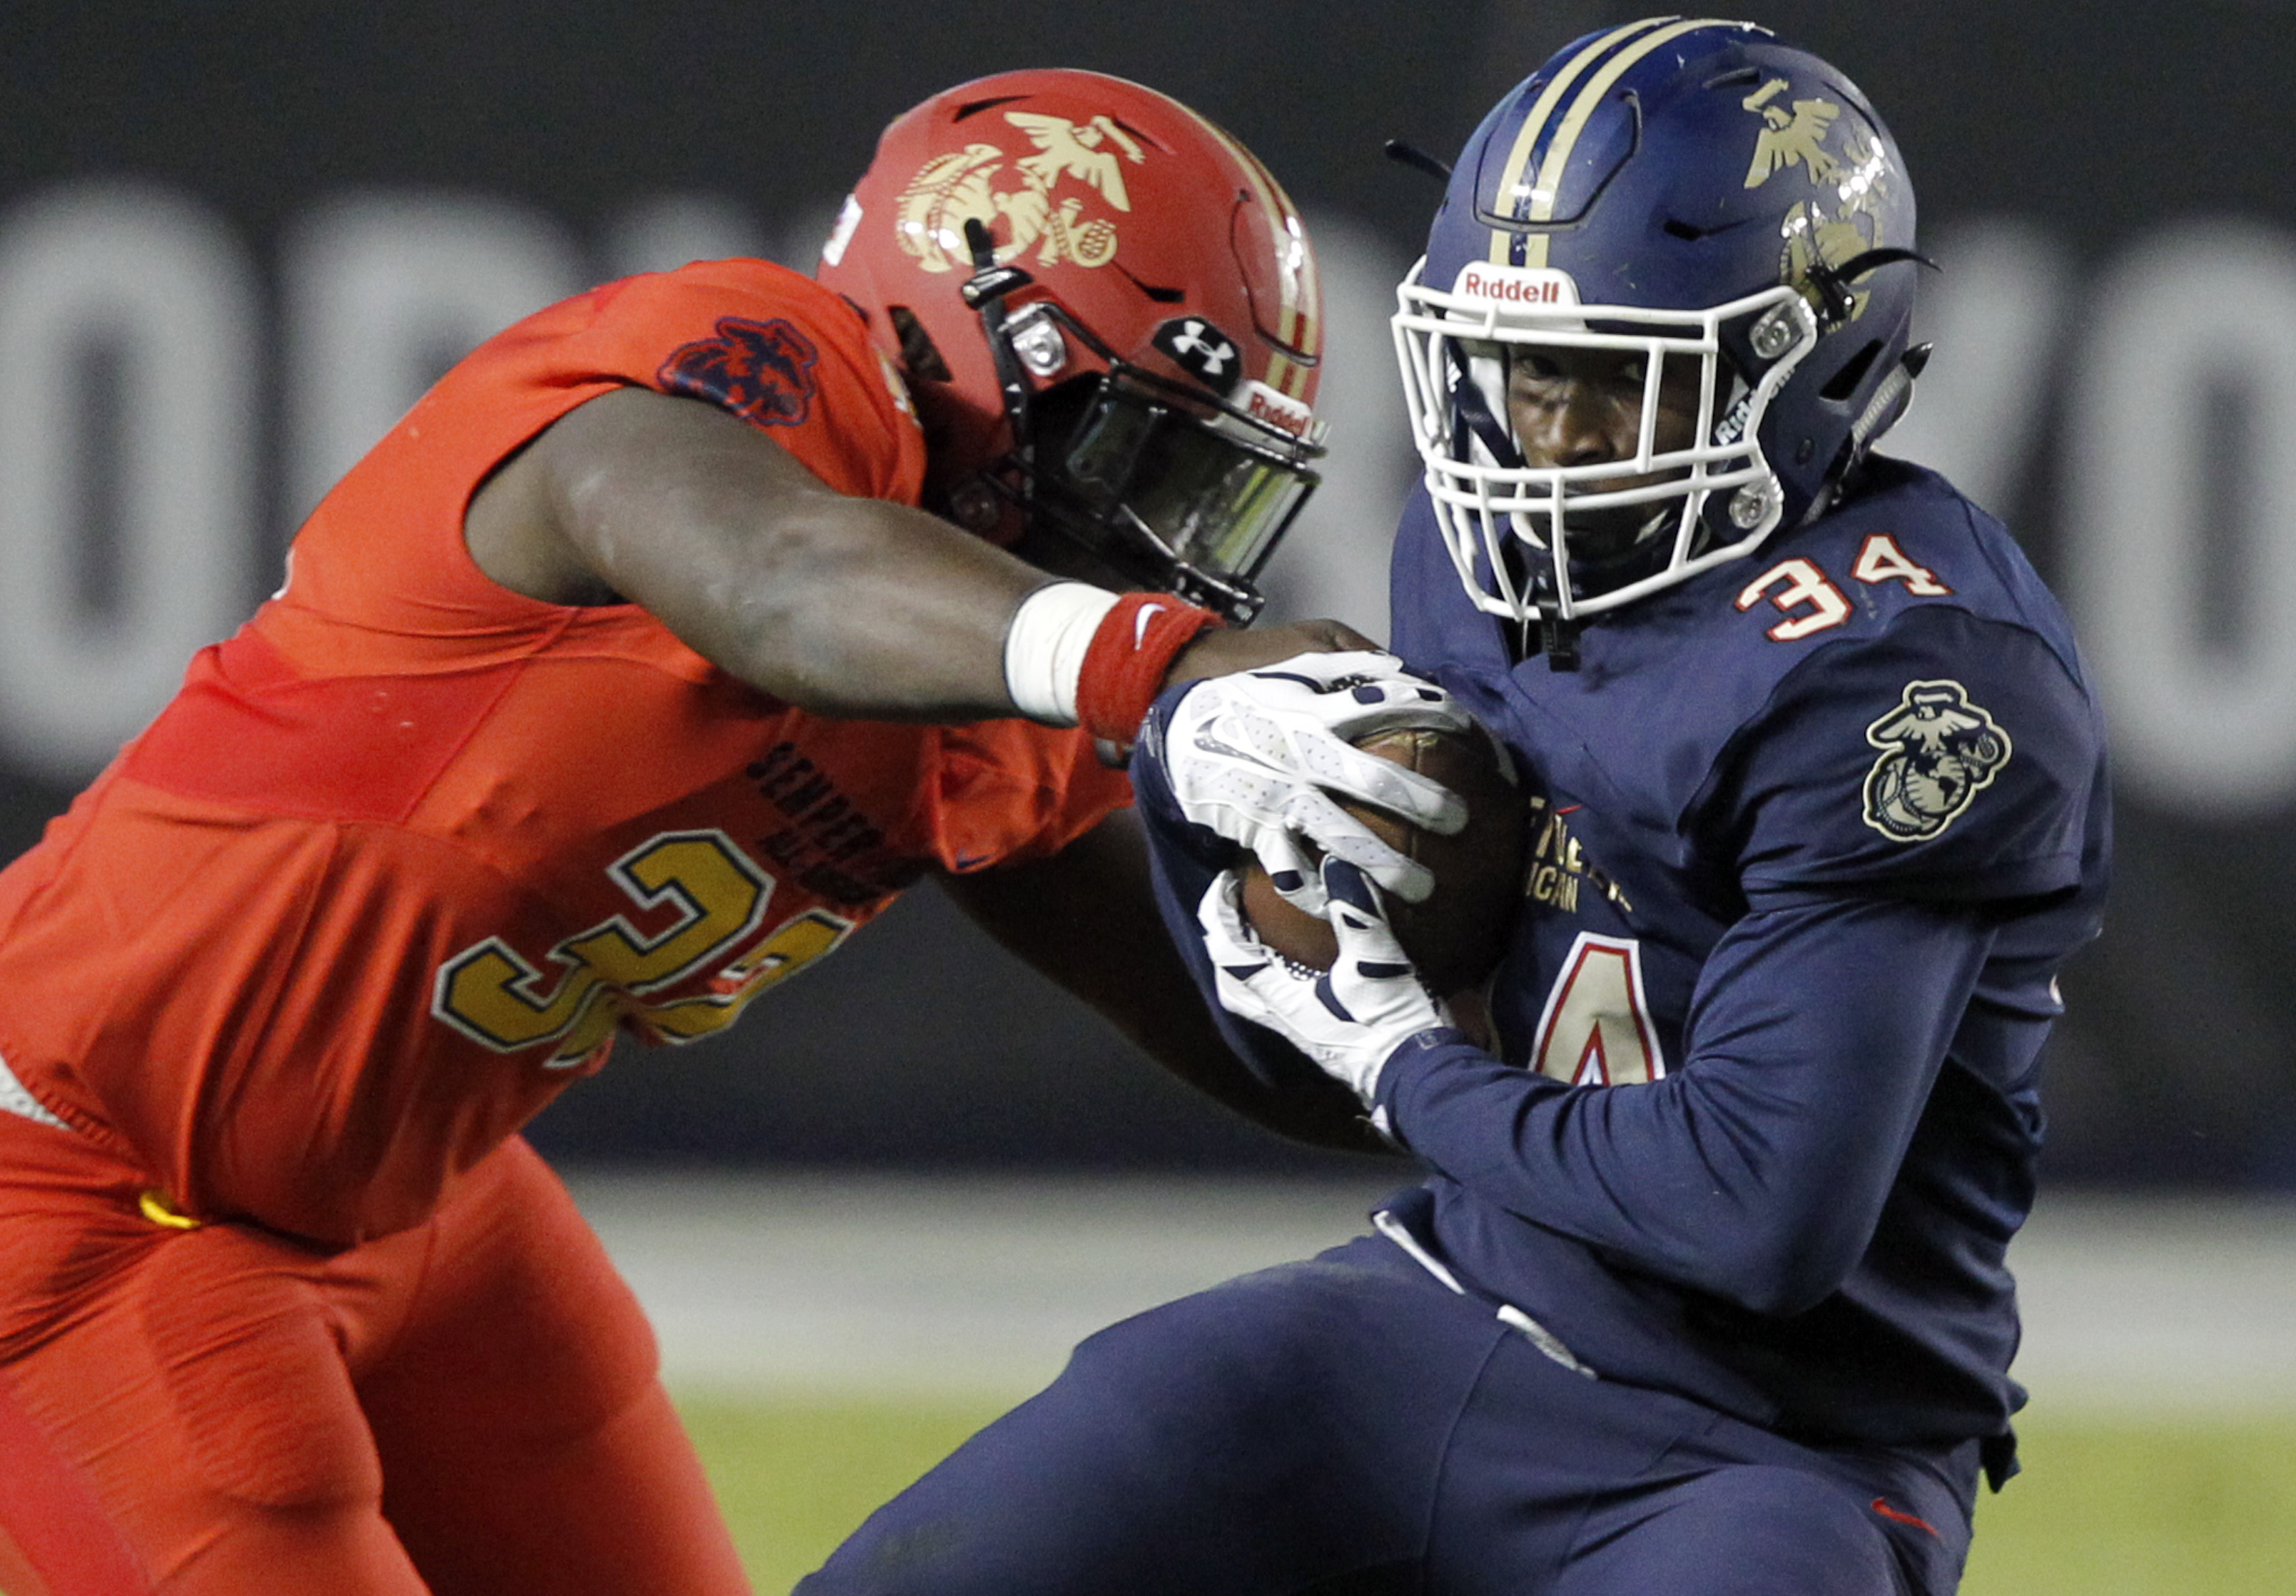 West defensive end Isaiah Chambers, left, gets his hand on the ball, as East running back Amir Rasul runs for a first down Photo: (Alex Gallardo, Associated Press)